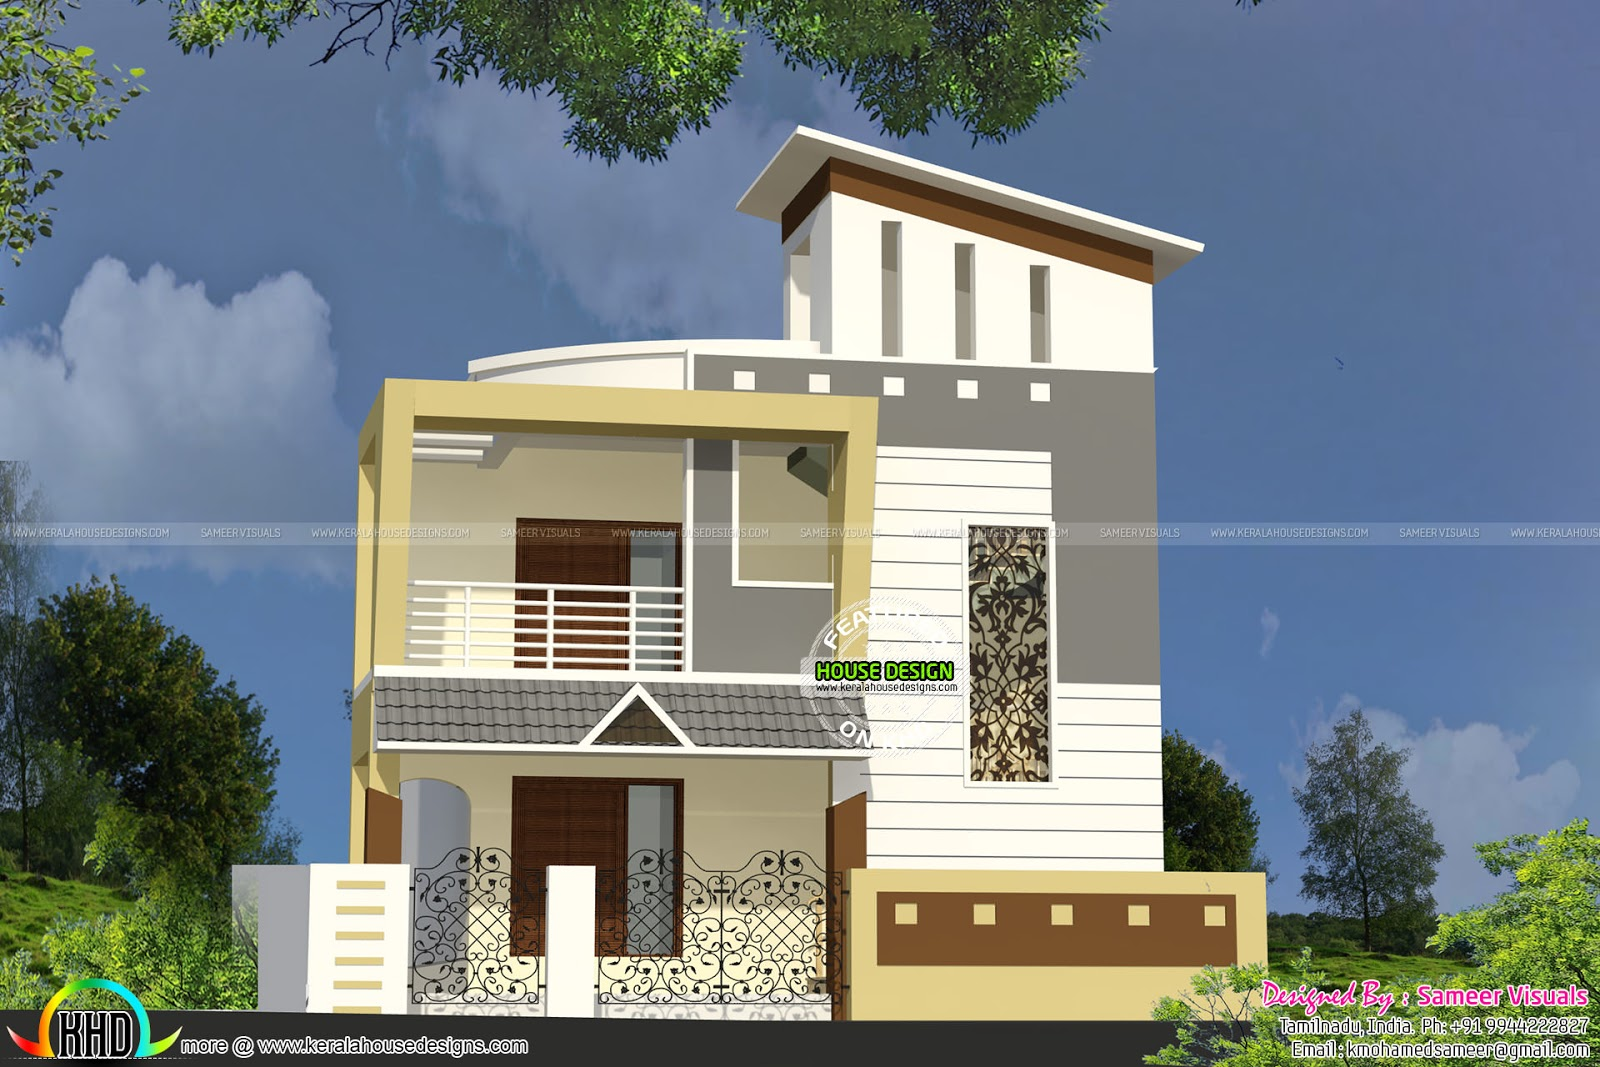 Double floor small home kerala home design and floor plans for Tamilnadu house models